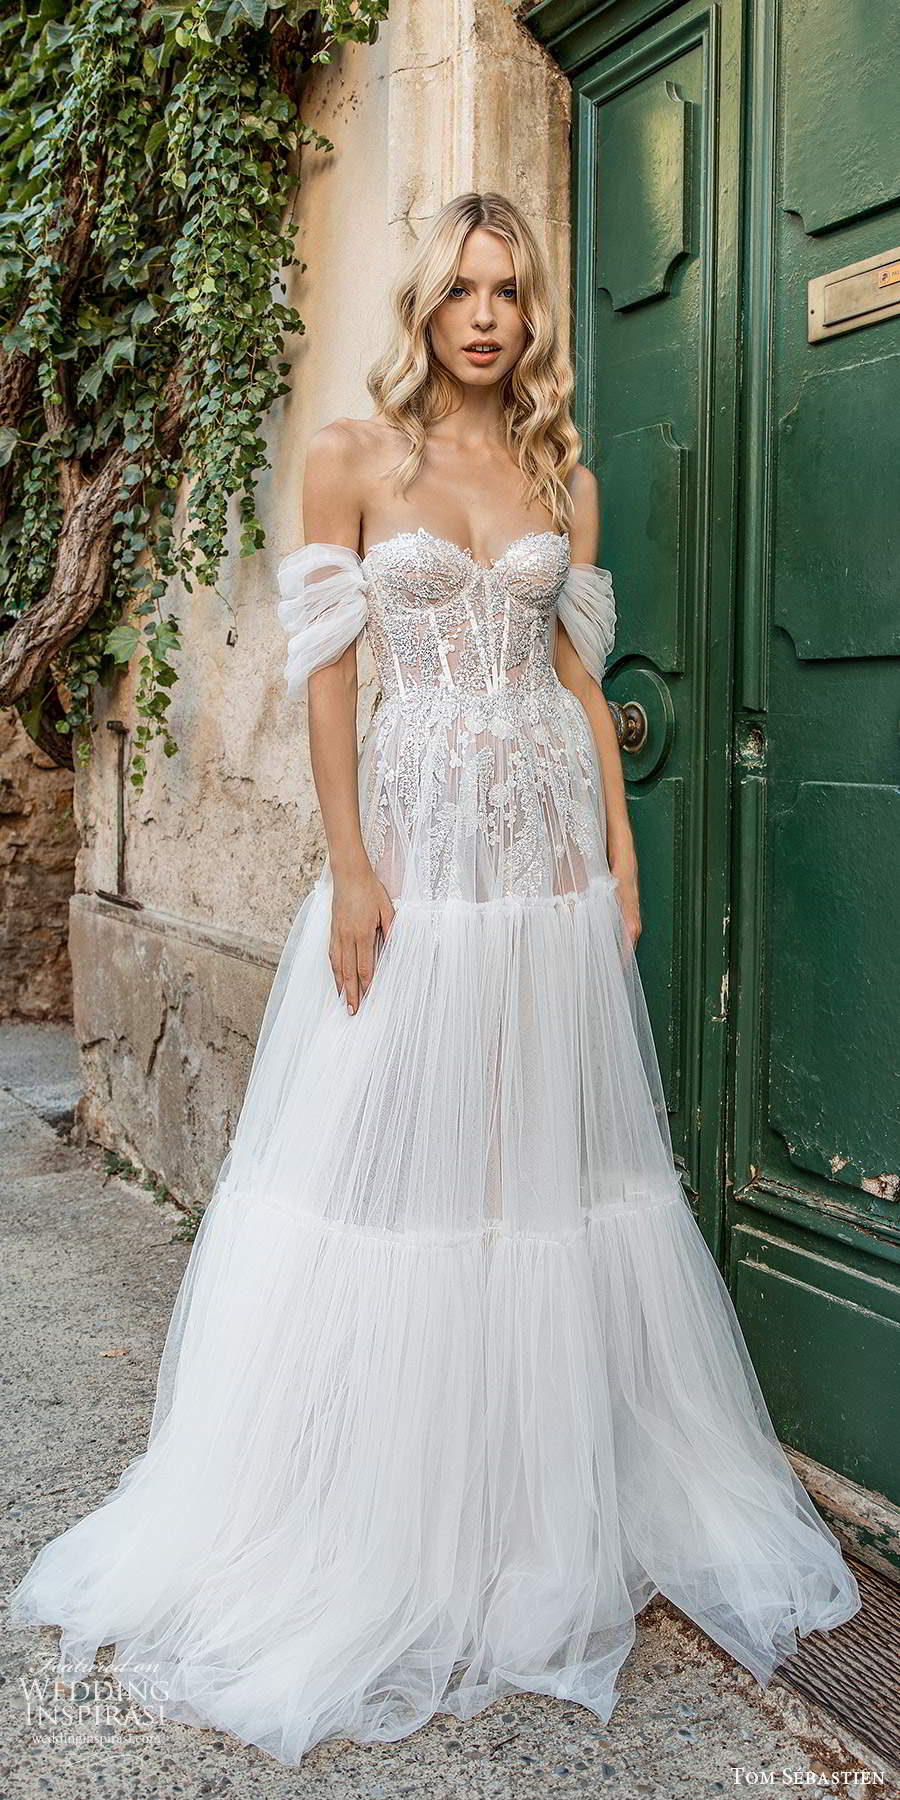 tom sebastien 2021 bridal provence off shoulder straps sweetheart neckline heavily embellished bodice a line ball gown wedding dress (5) lv